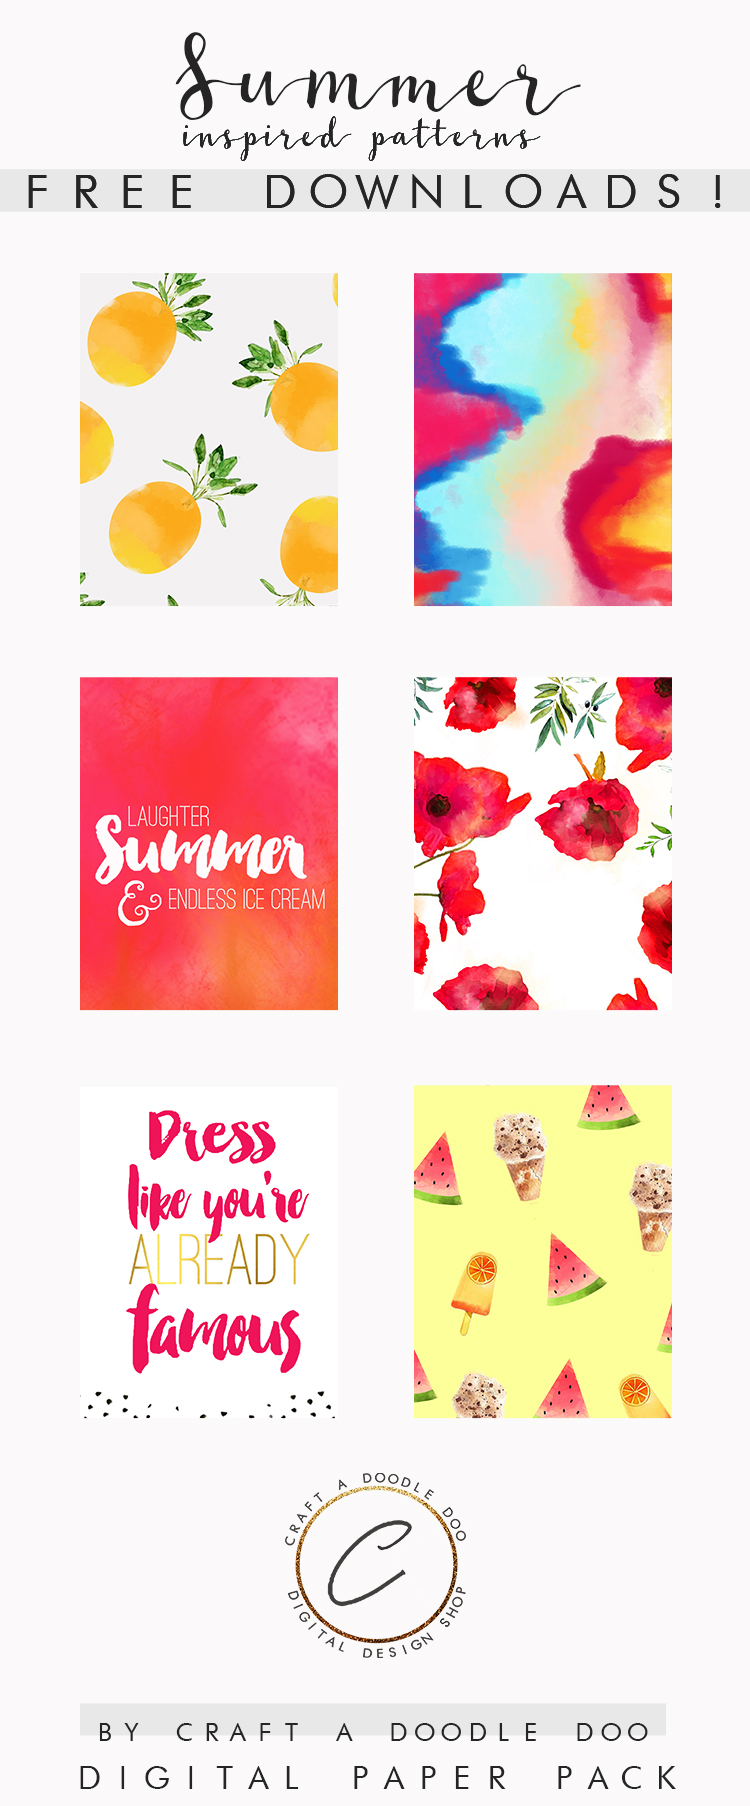 Free Shadows of Summer Digital Paper Backgrounds by Craft A Doodle Doo   Scrapbooking and Planner Printables Patterns Pack #freeprintables #freescrapbookingfreebies #summerprintables #colorfulpatterns #freeplannerprintables #freesummerprintables #summerdesigns